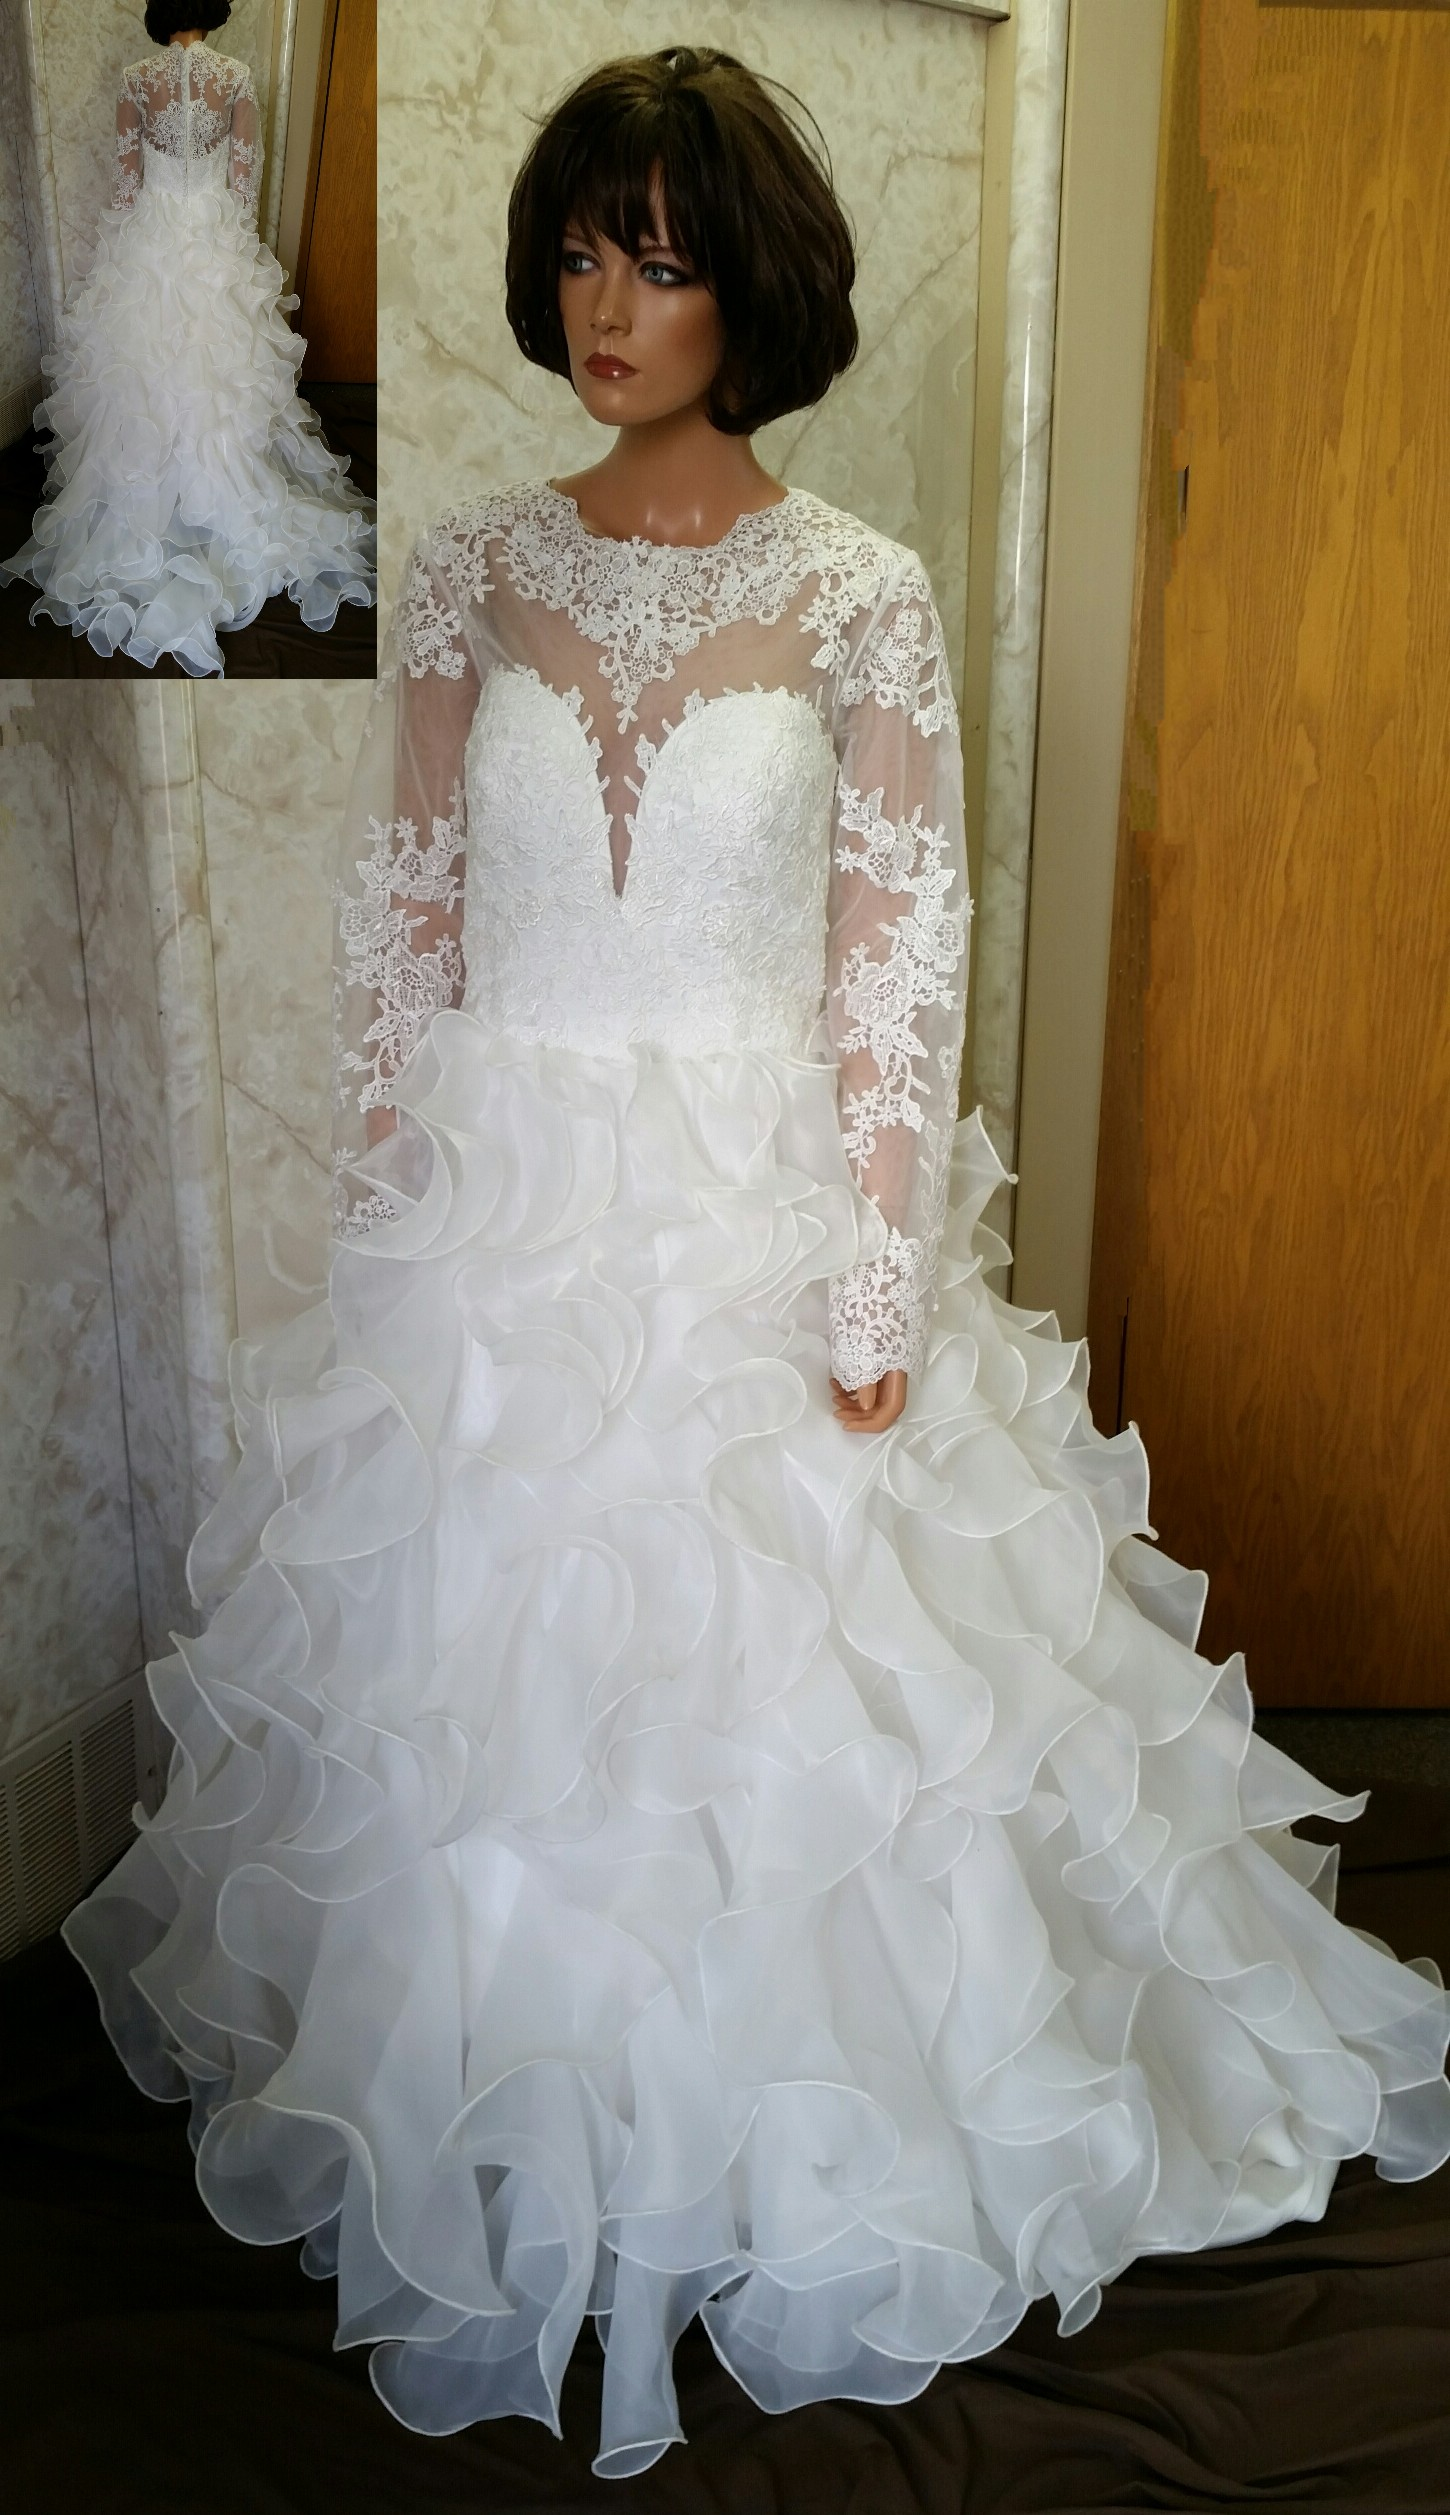 Wedding gowns designed by Brides